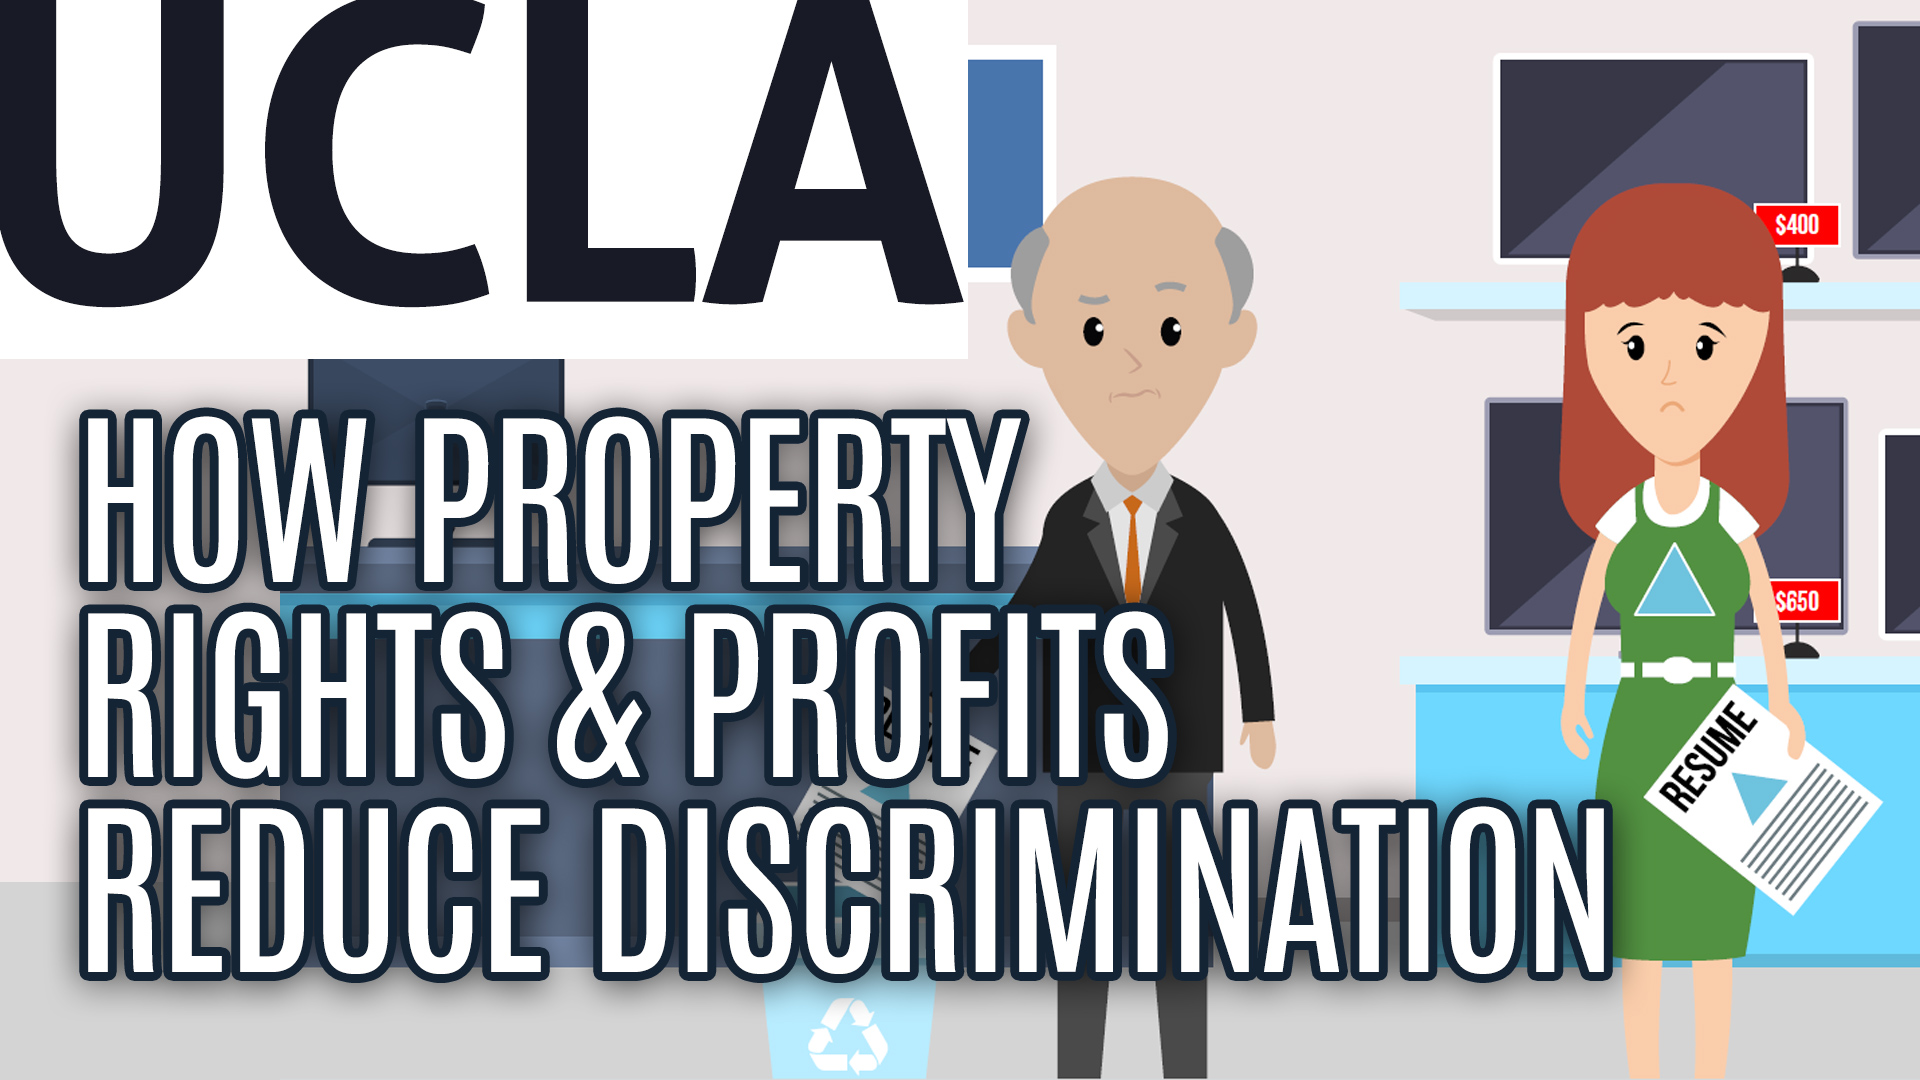 How Property Rights & Profits Reduce Discrimination